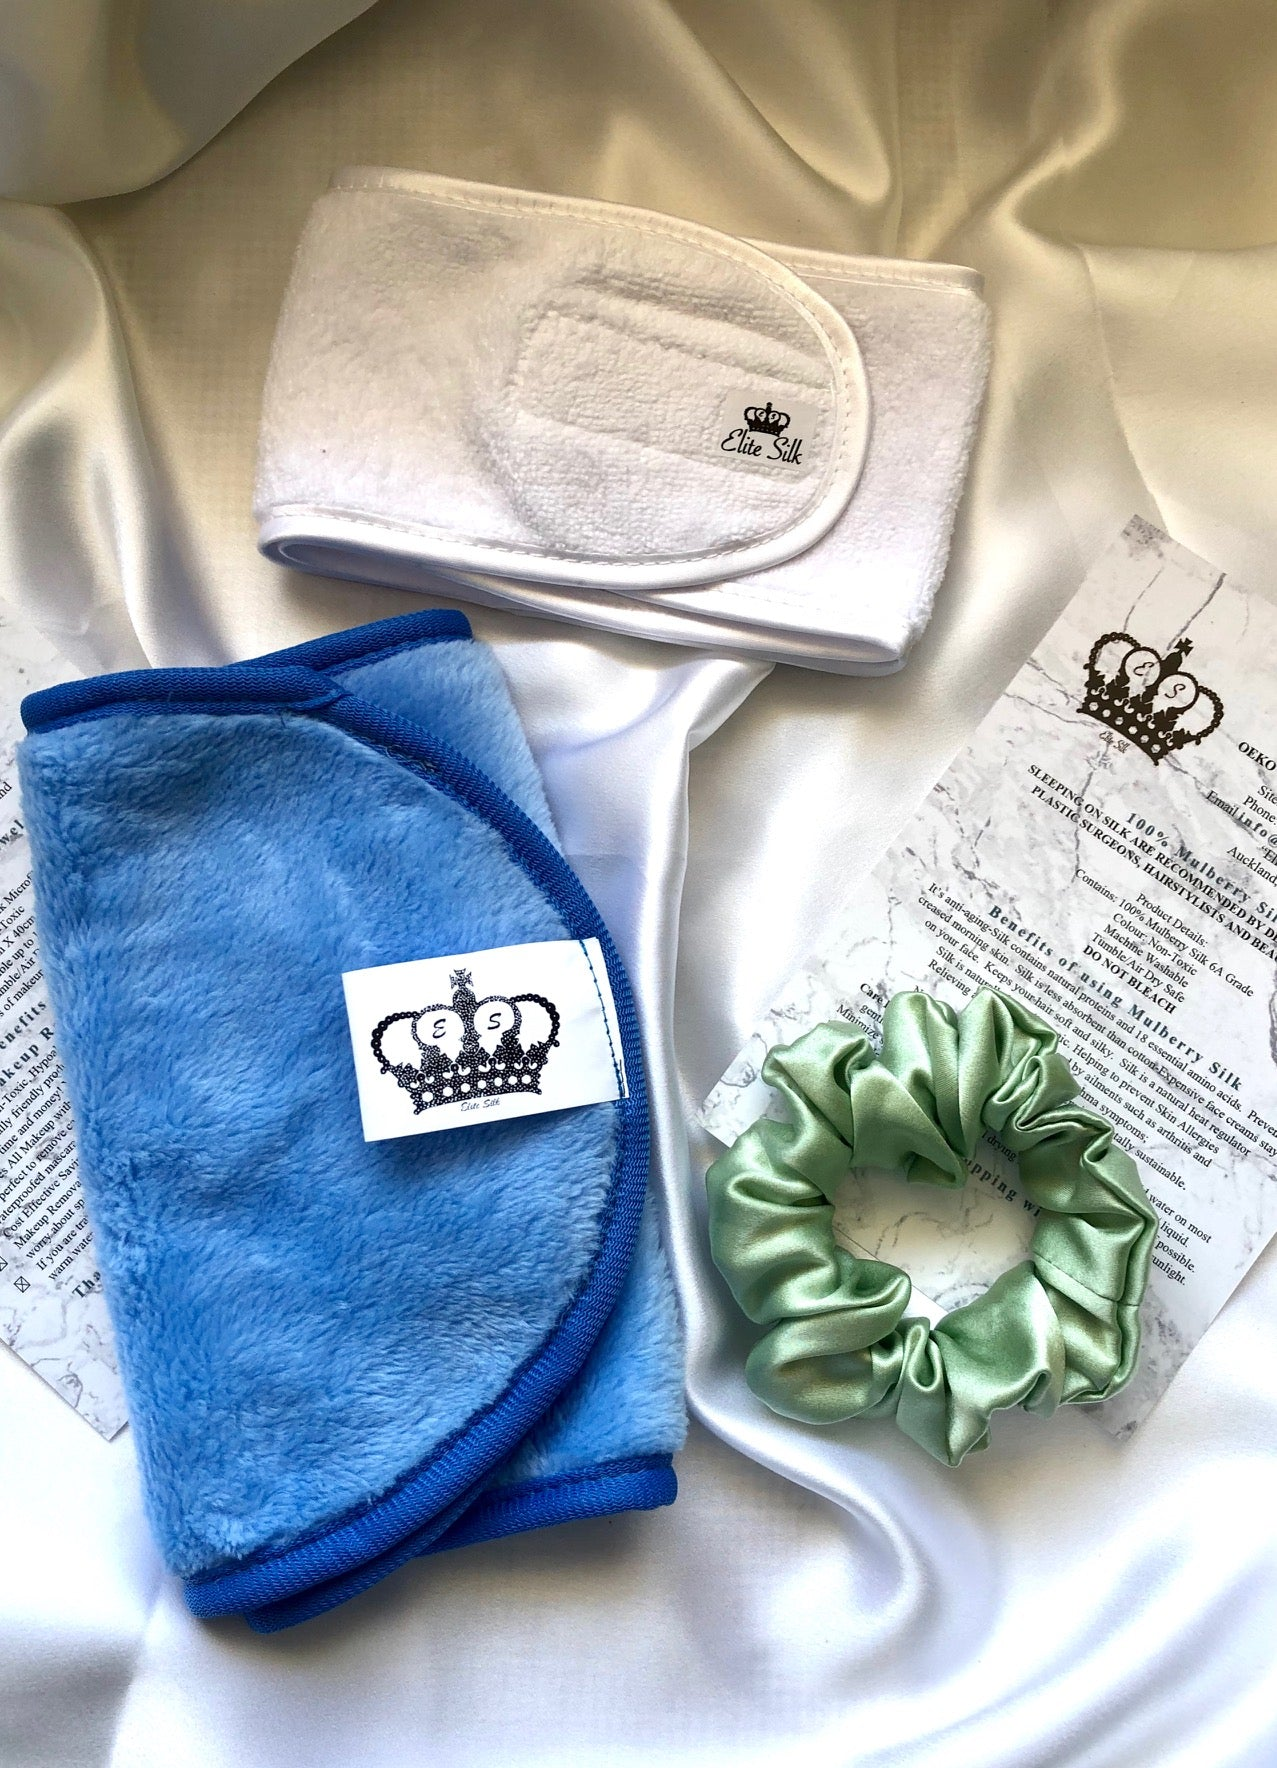 Dawn Skincare Minnie Pack - Baby Blue makeup removal towel, white headband, mint green scrunchie  from Elite Silk Luxury